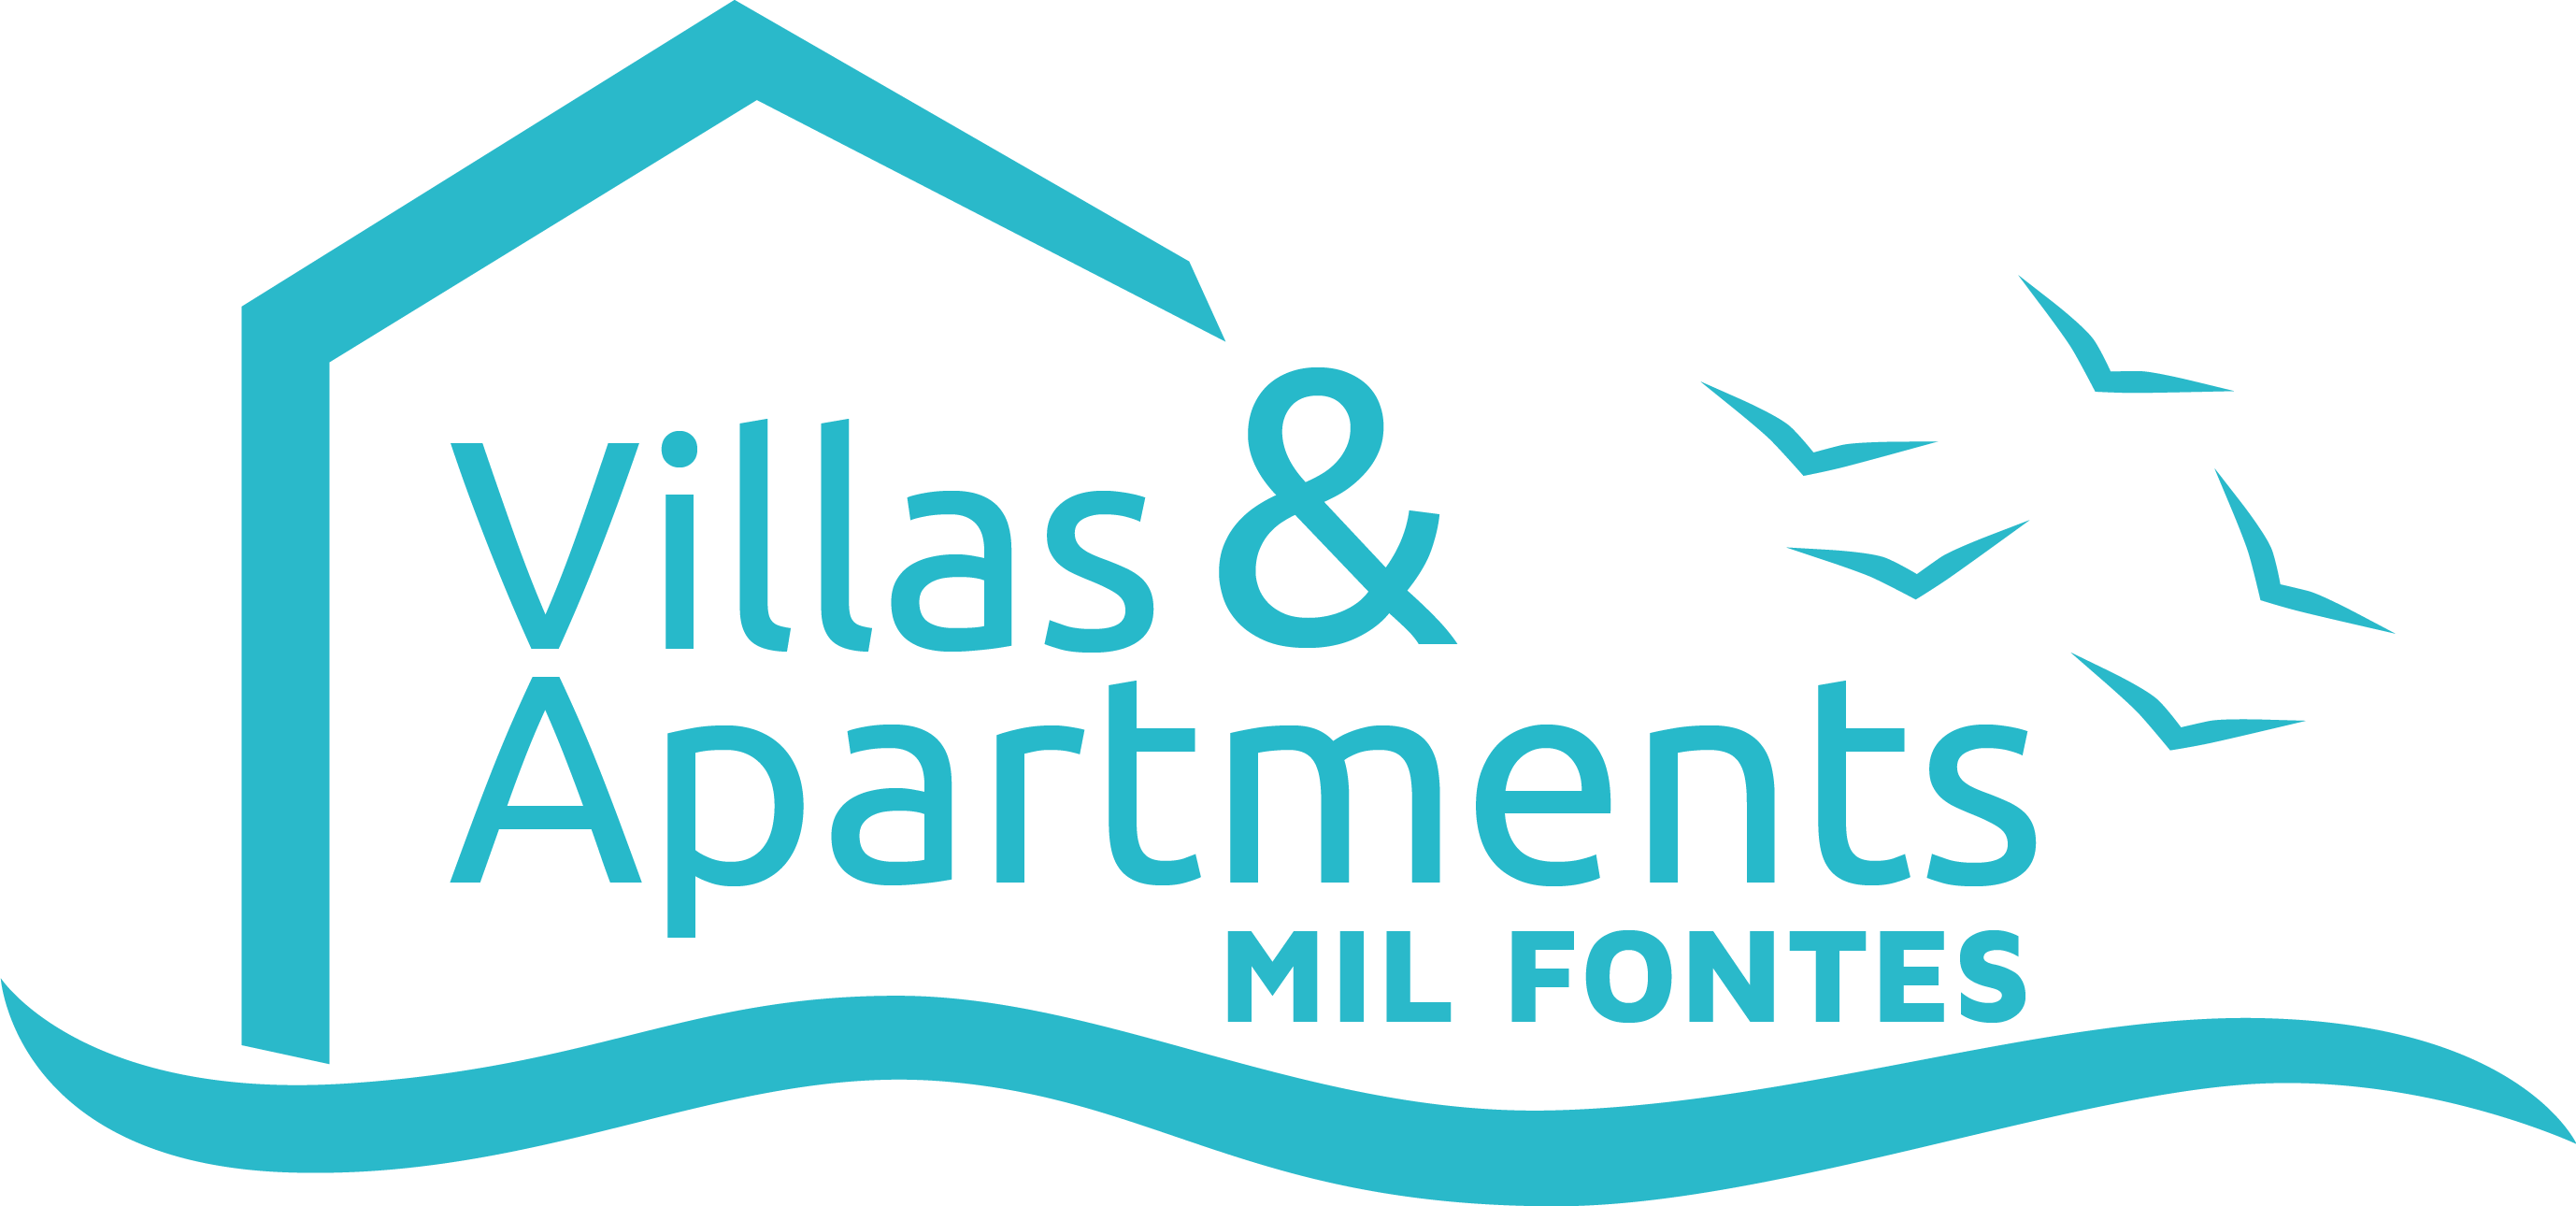 Mil Fontes - Villas and Apartments